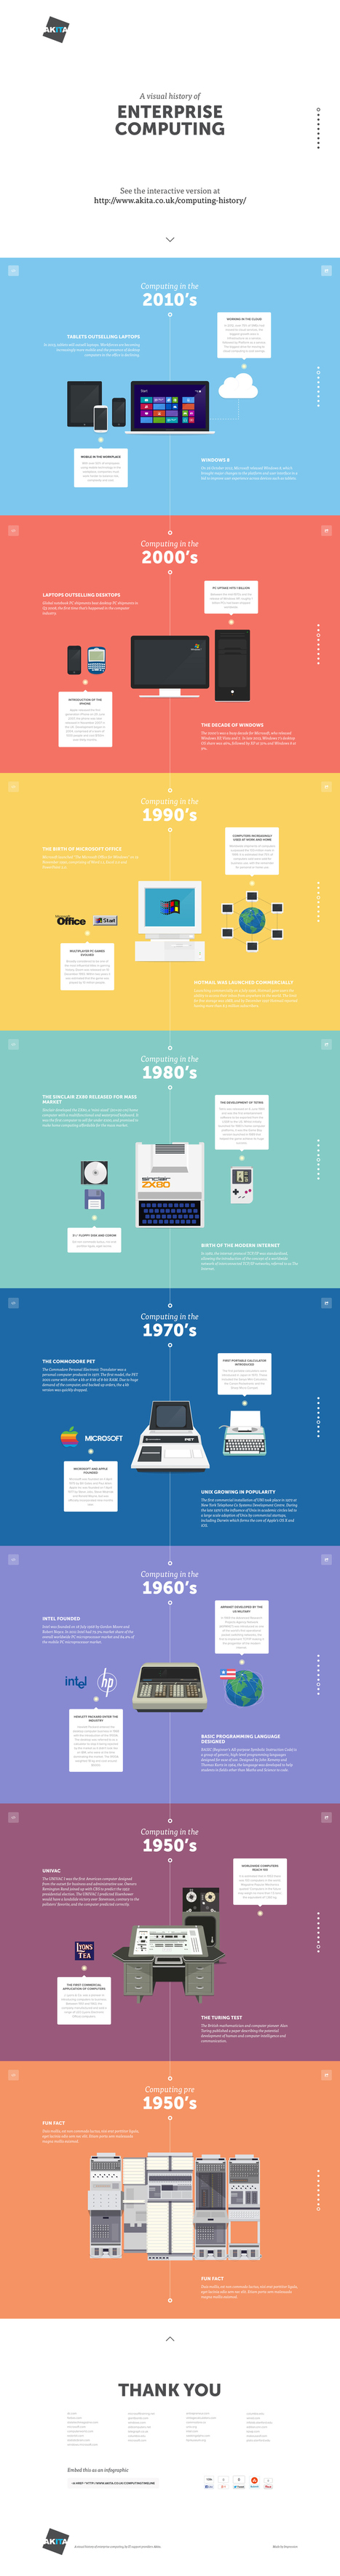 A Visual History of Computing [Infographic] | Future of Cloud Computing | Scoop.it